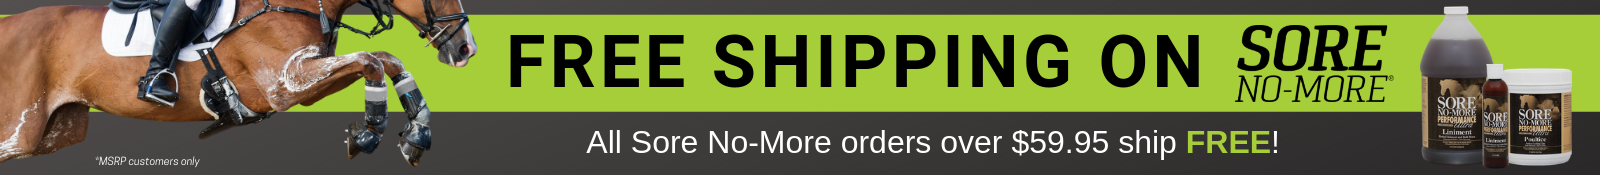 FREE Shipping on Sore No-More!